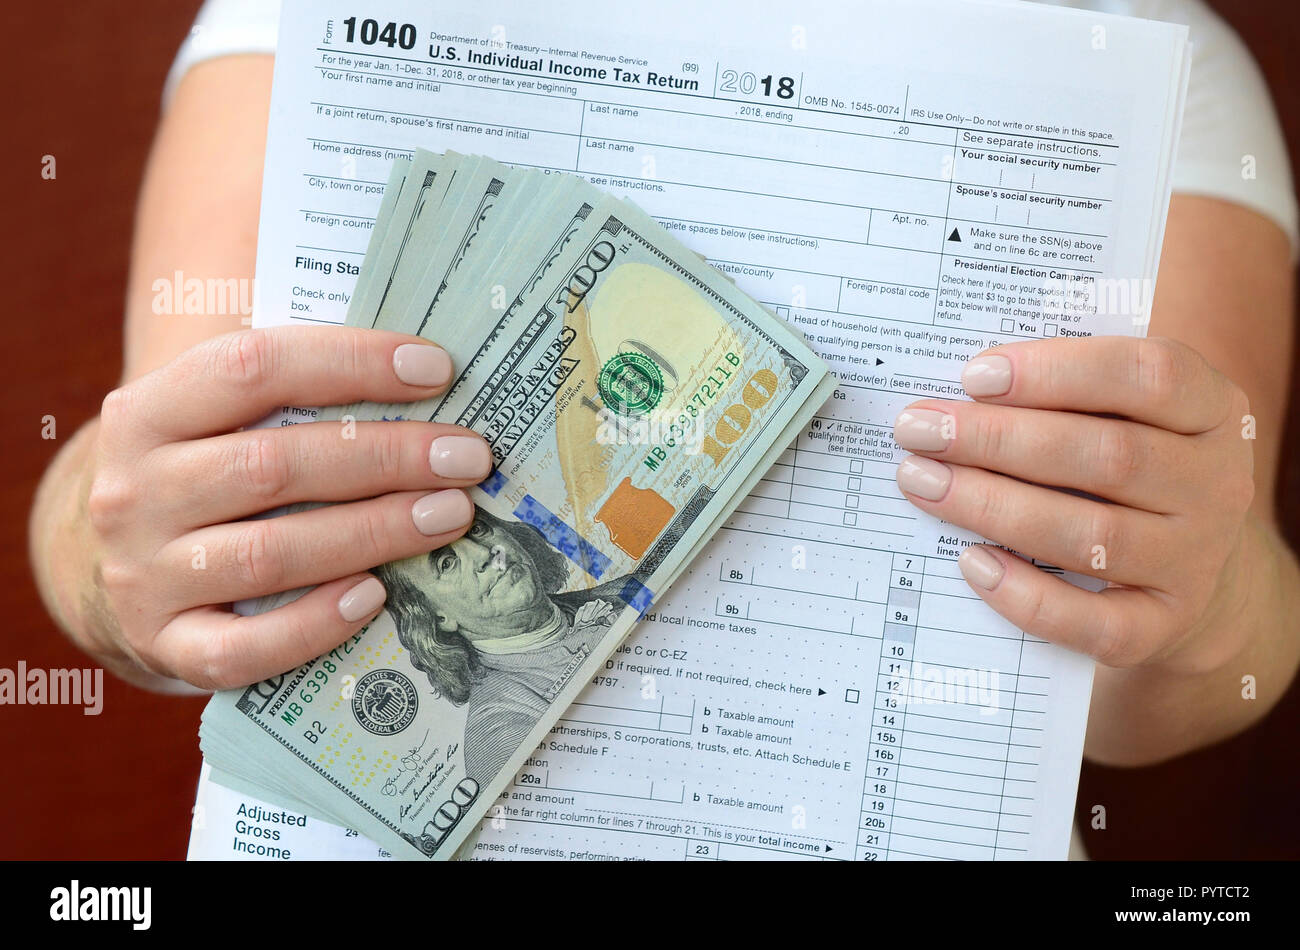 Tax Form Stock Photos & Tax Form Stock Images - Page 3 - Alamy